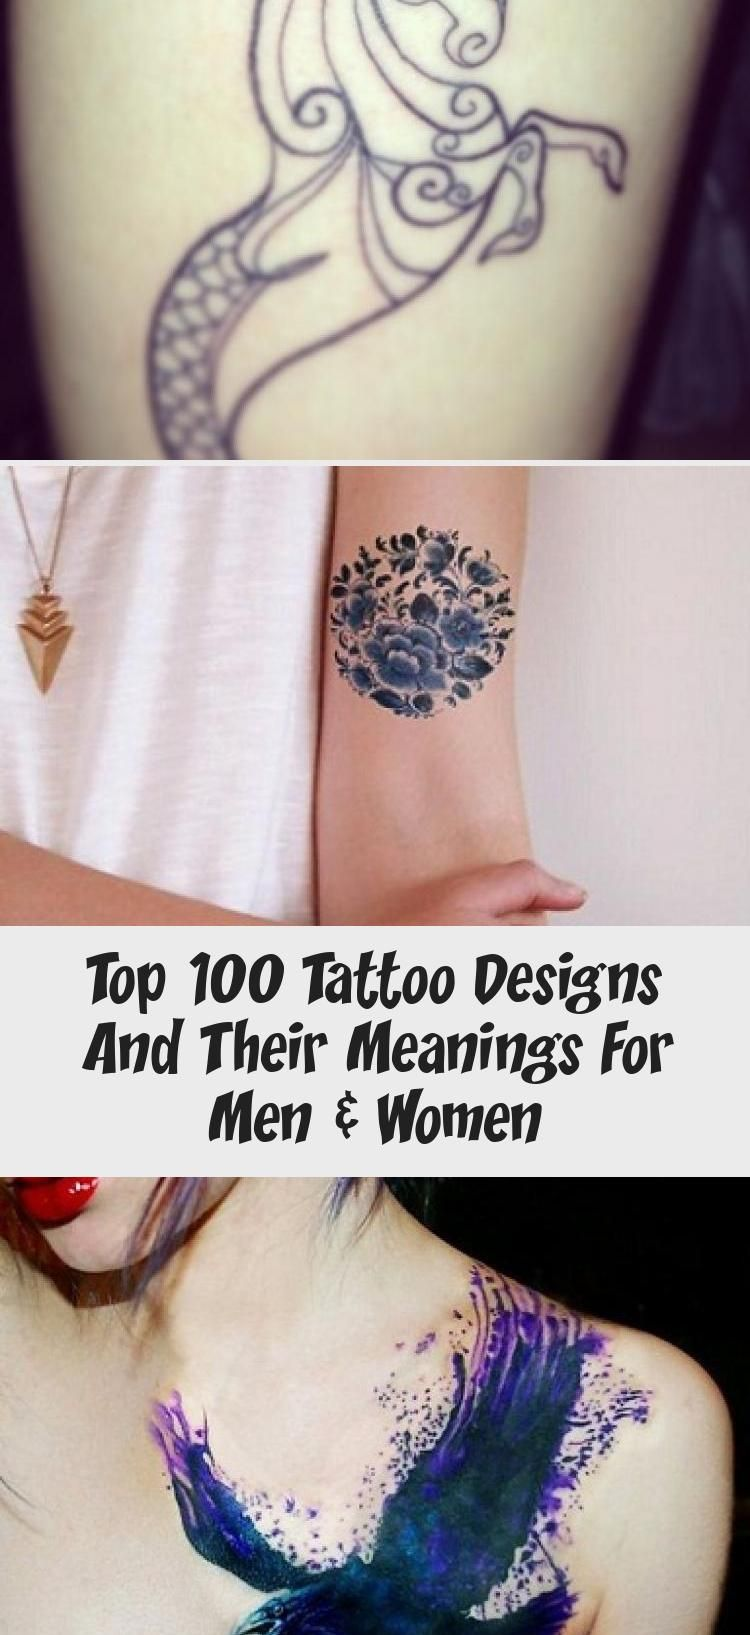 Photo of Top 100 Tattoo Designs And Their Meanings For Men & Women – Tattoo Blog